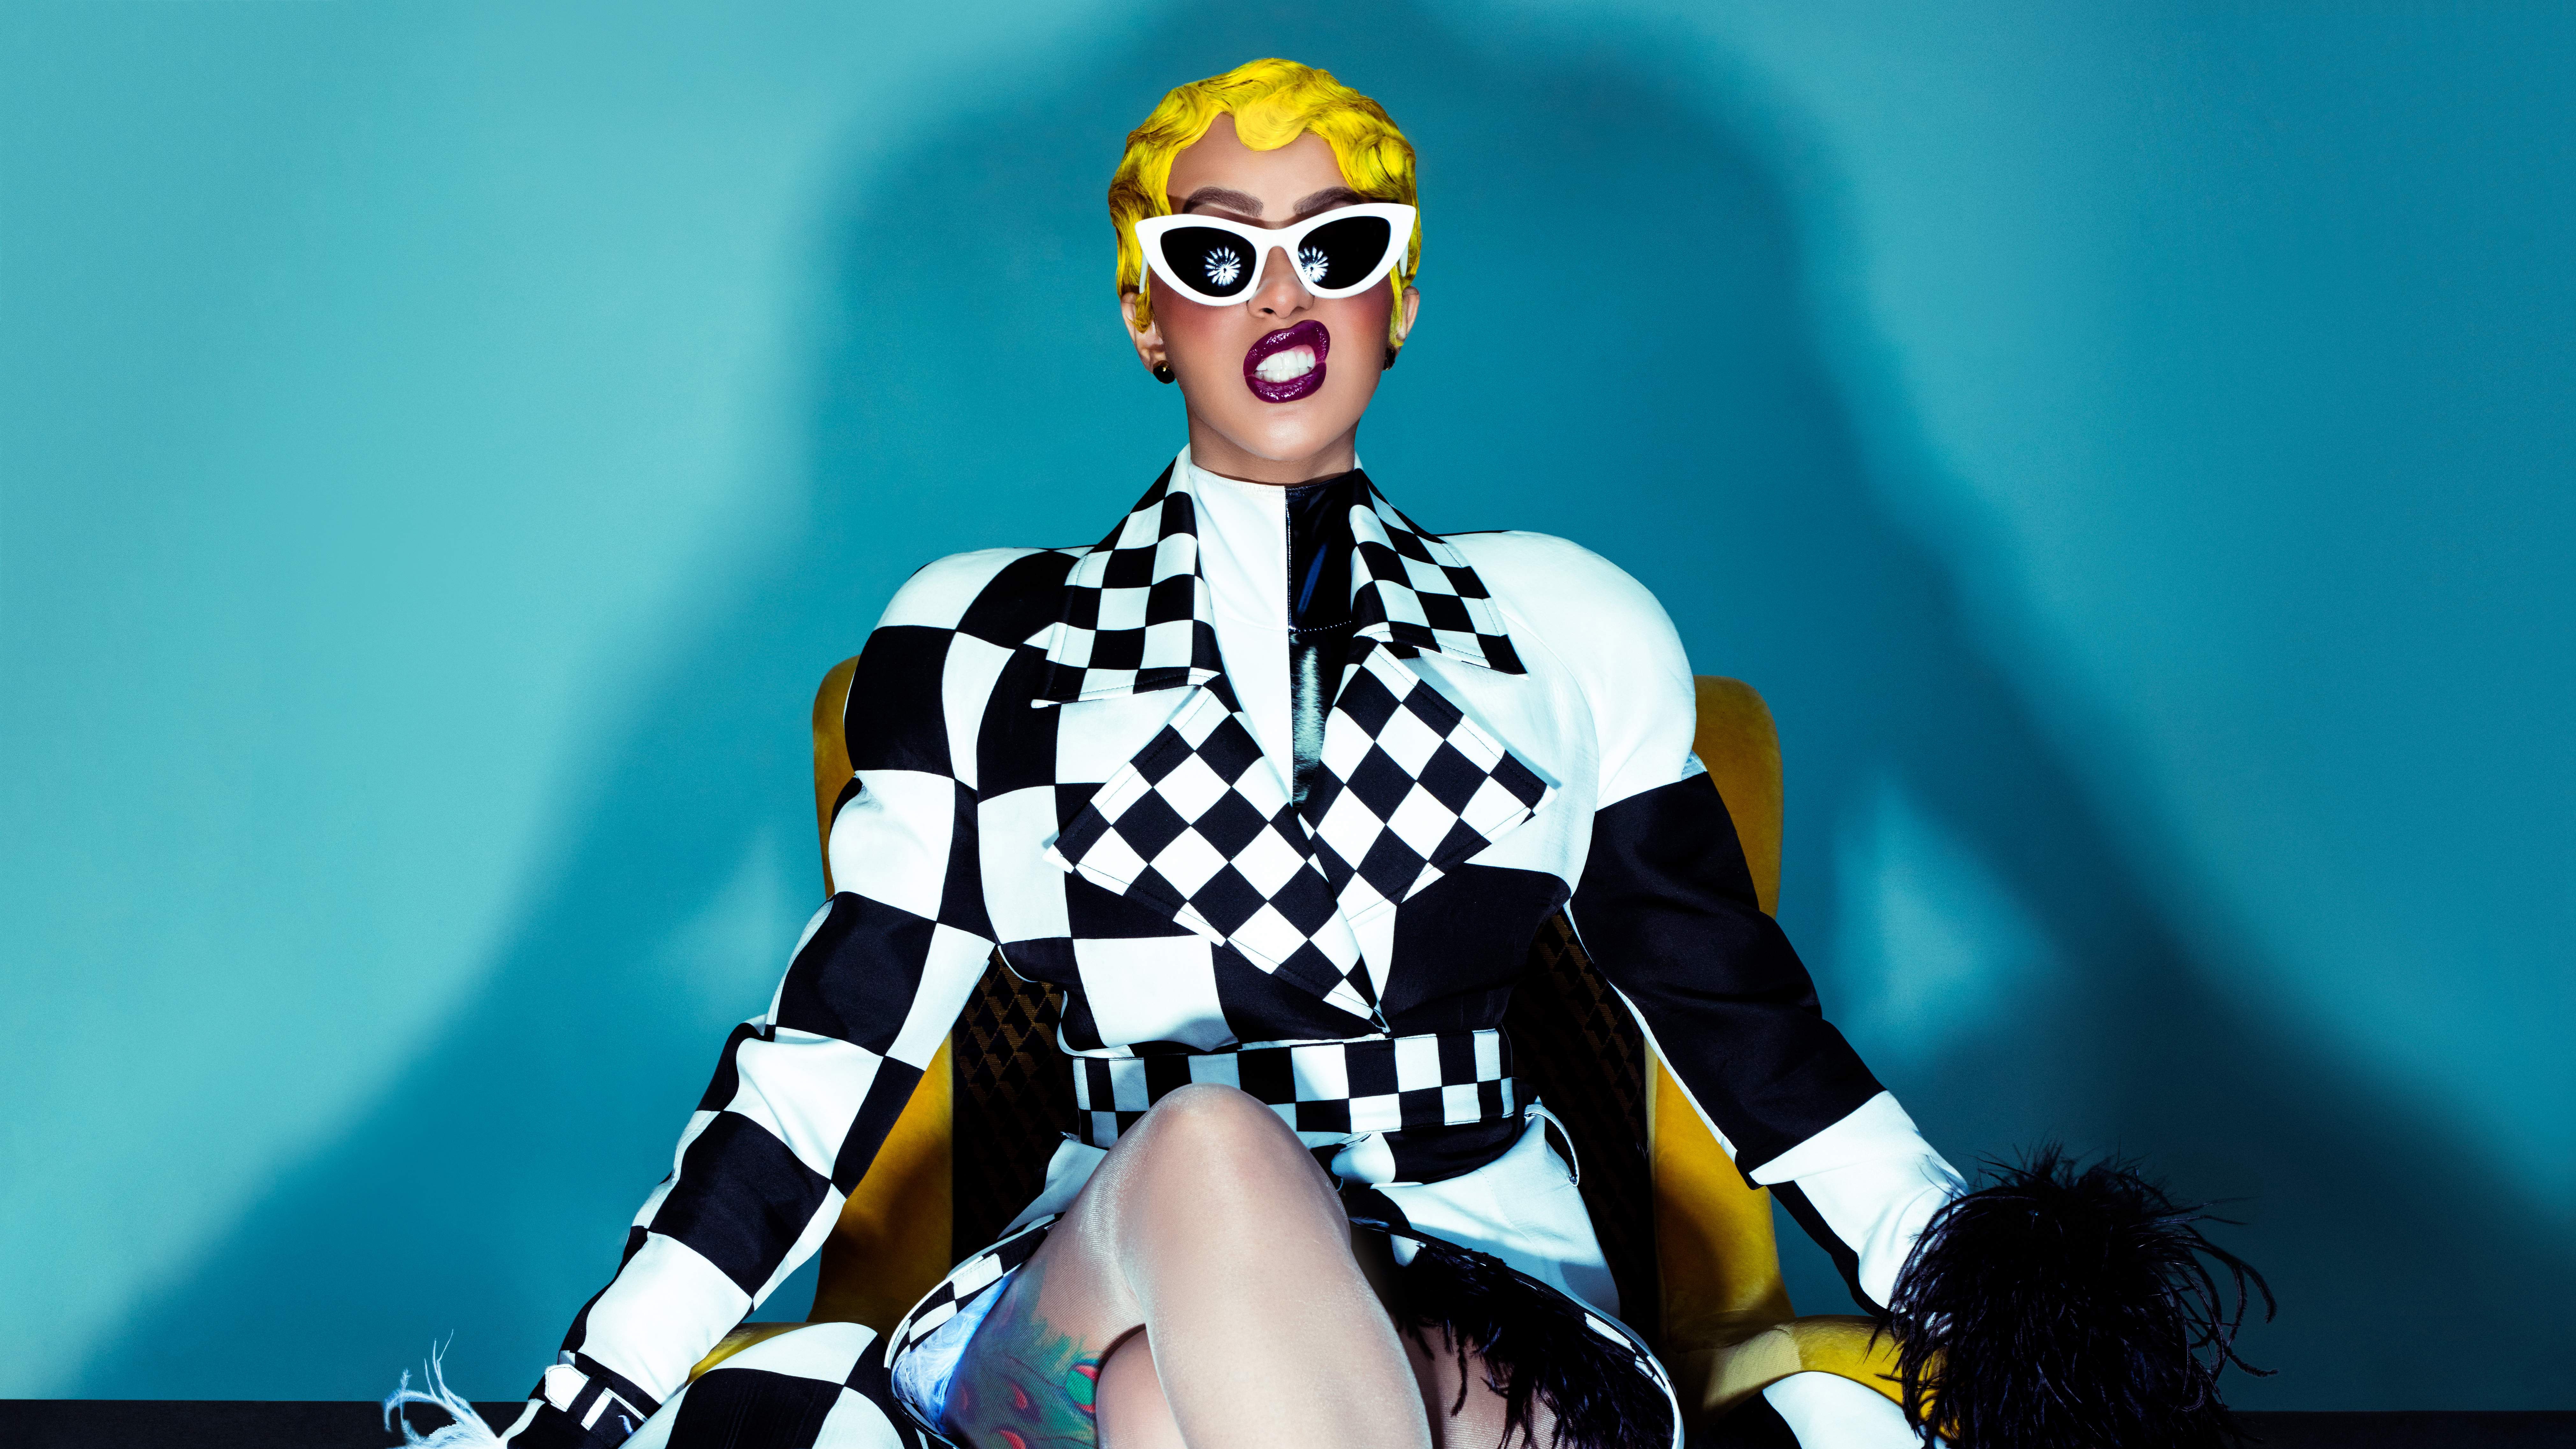 Cardi B 8k, HD Music, 4k Wallpapers, Images, Backgrounds ...